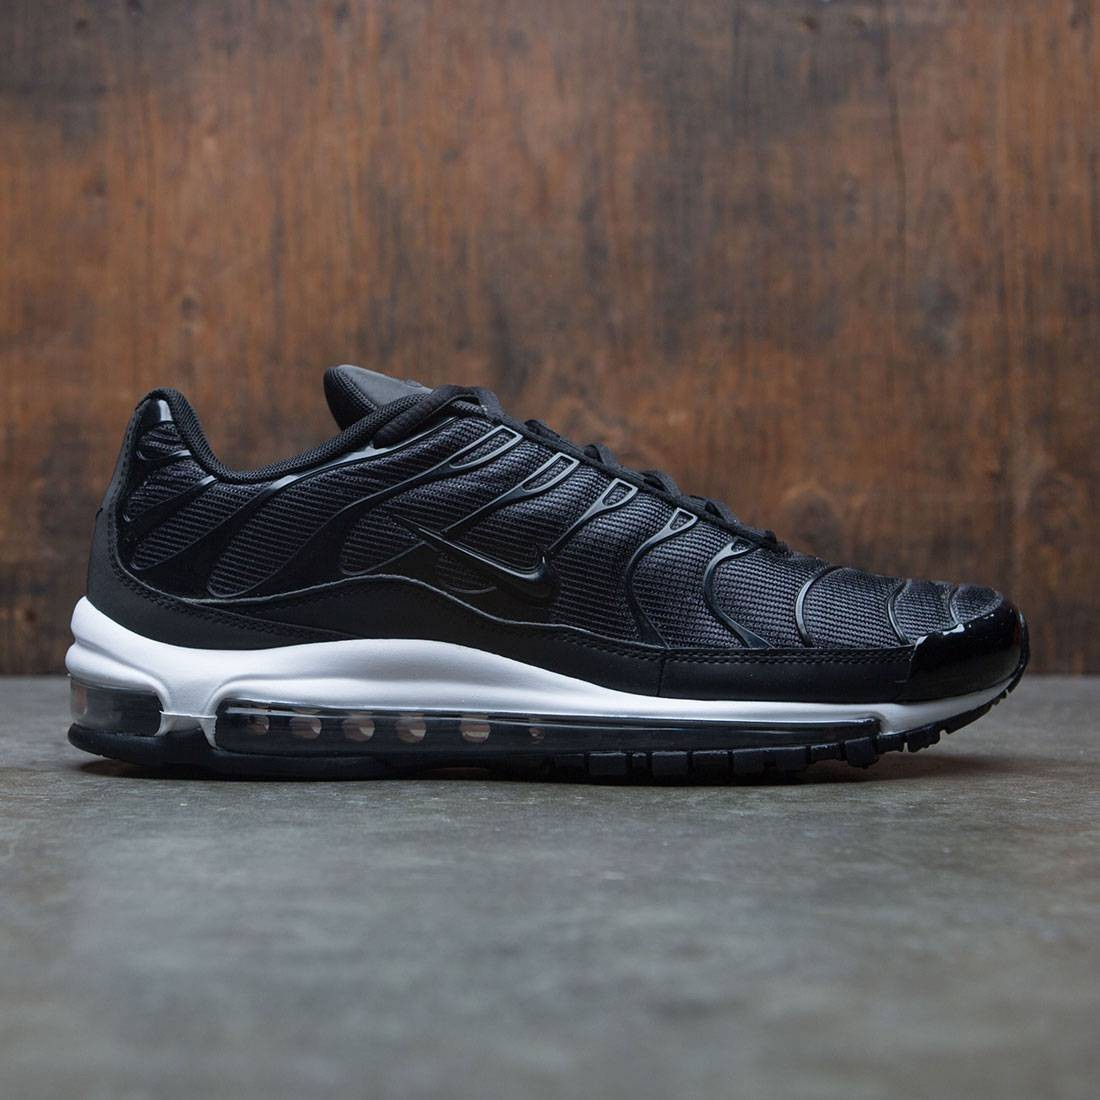 nike air max black white men